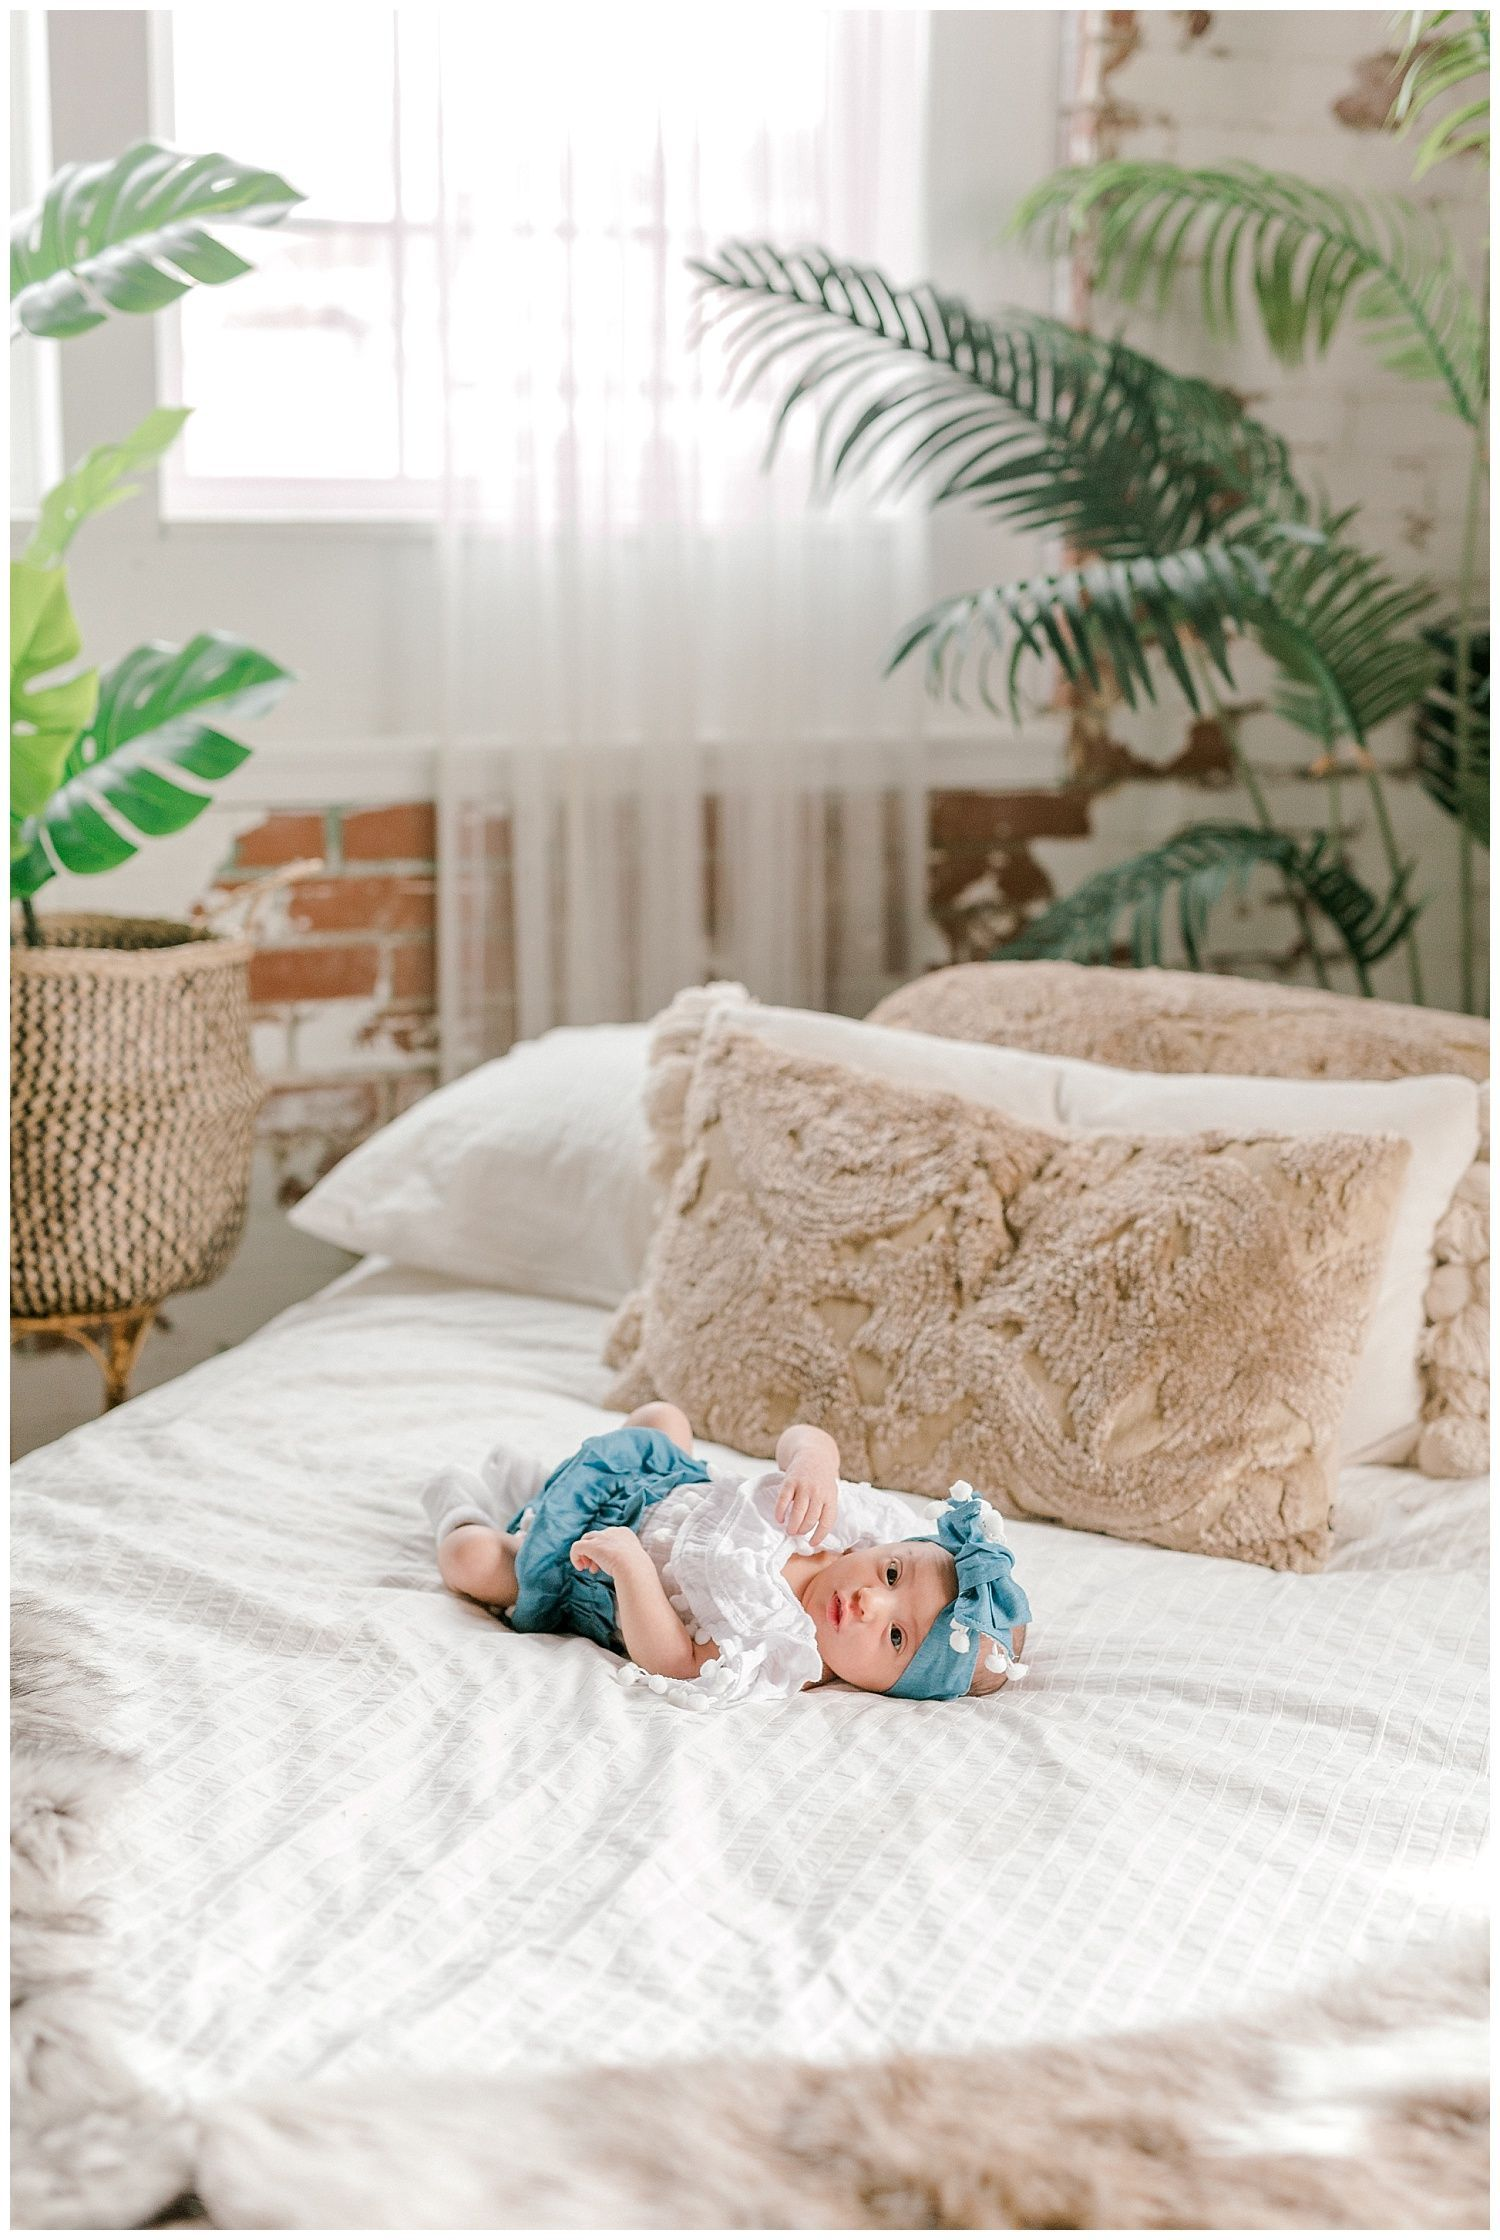 Willa Rian | A Studio Newborn Session - lytlephoto